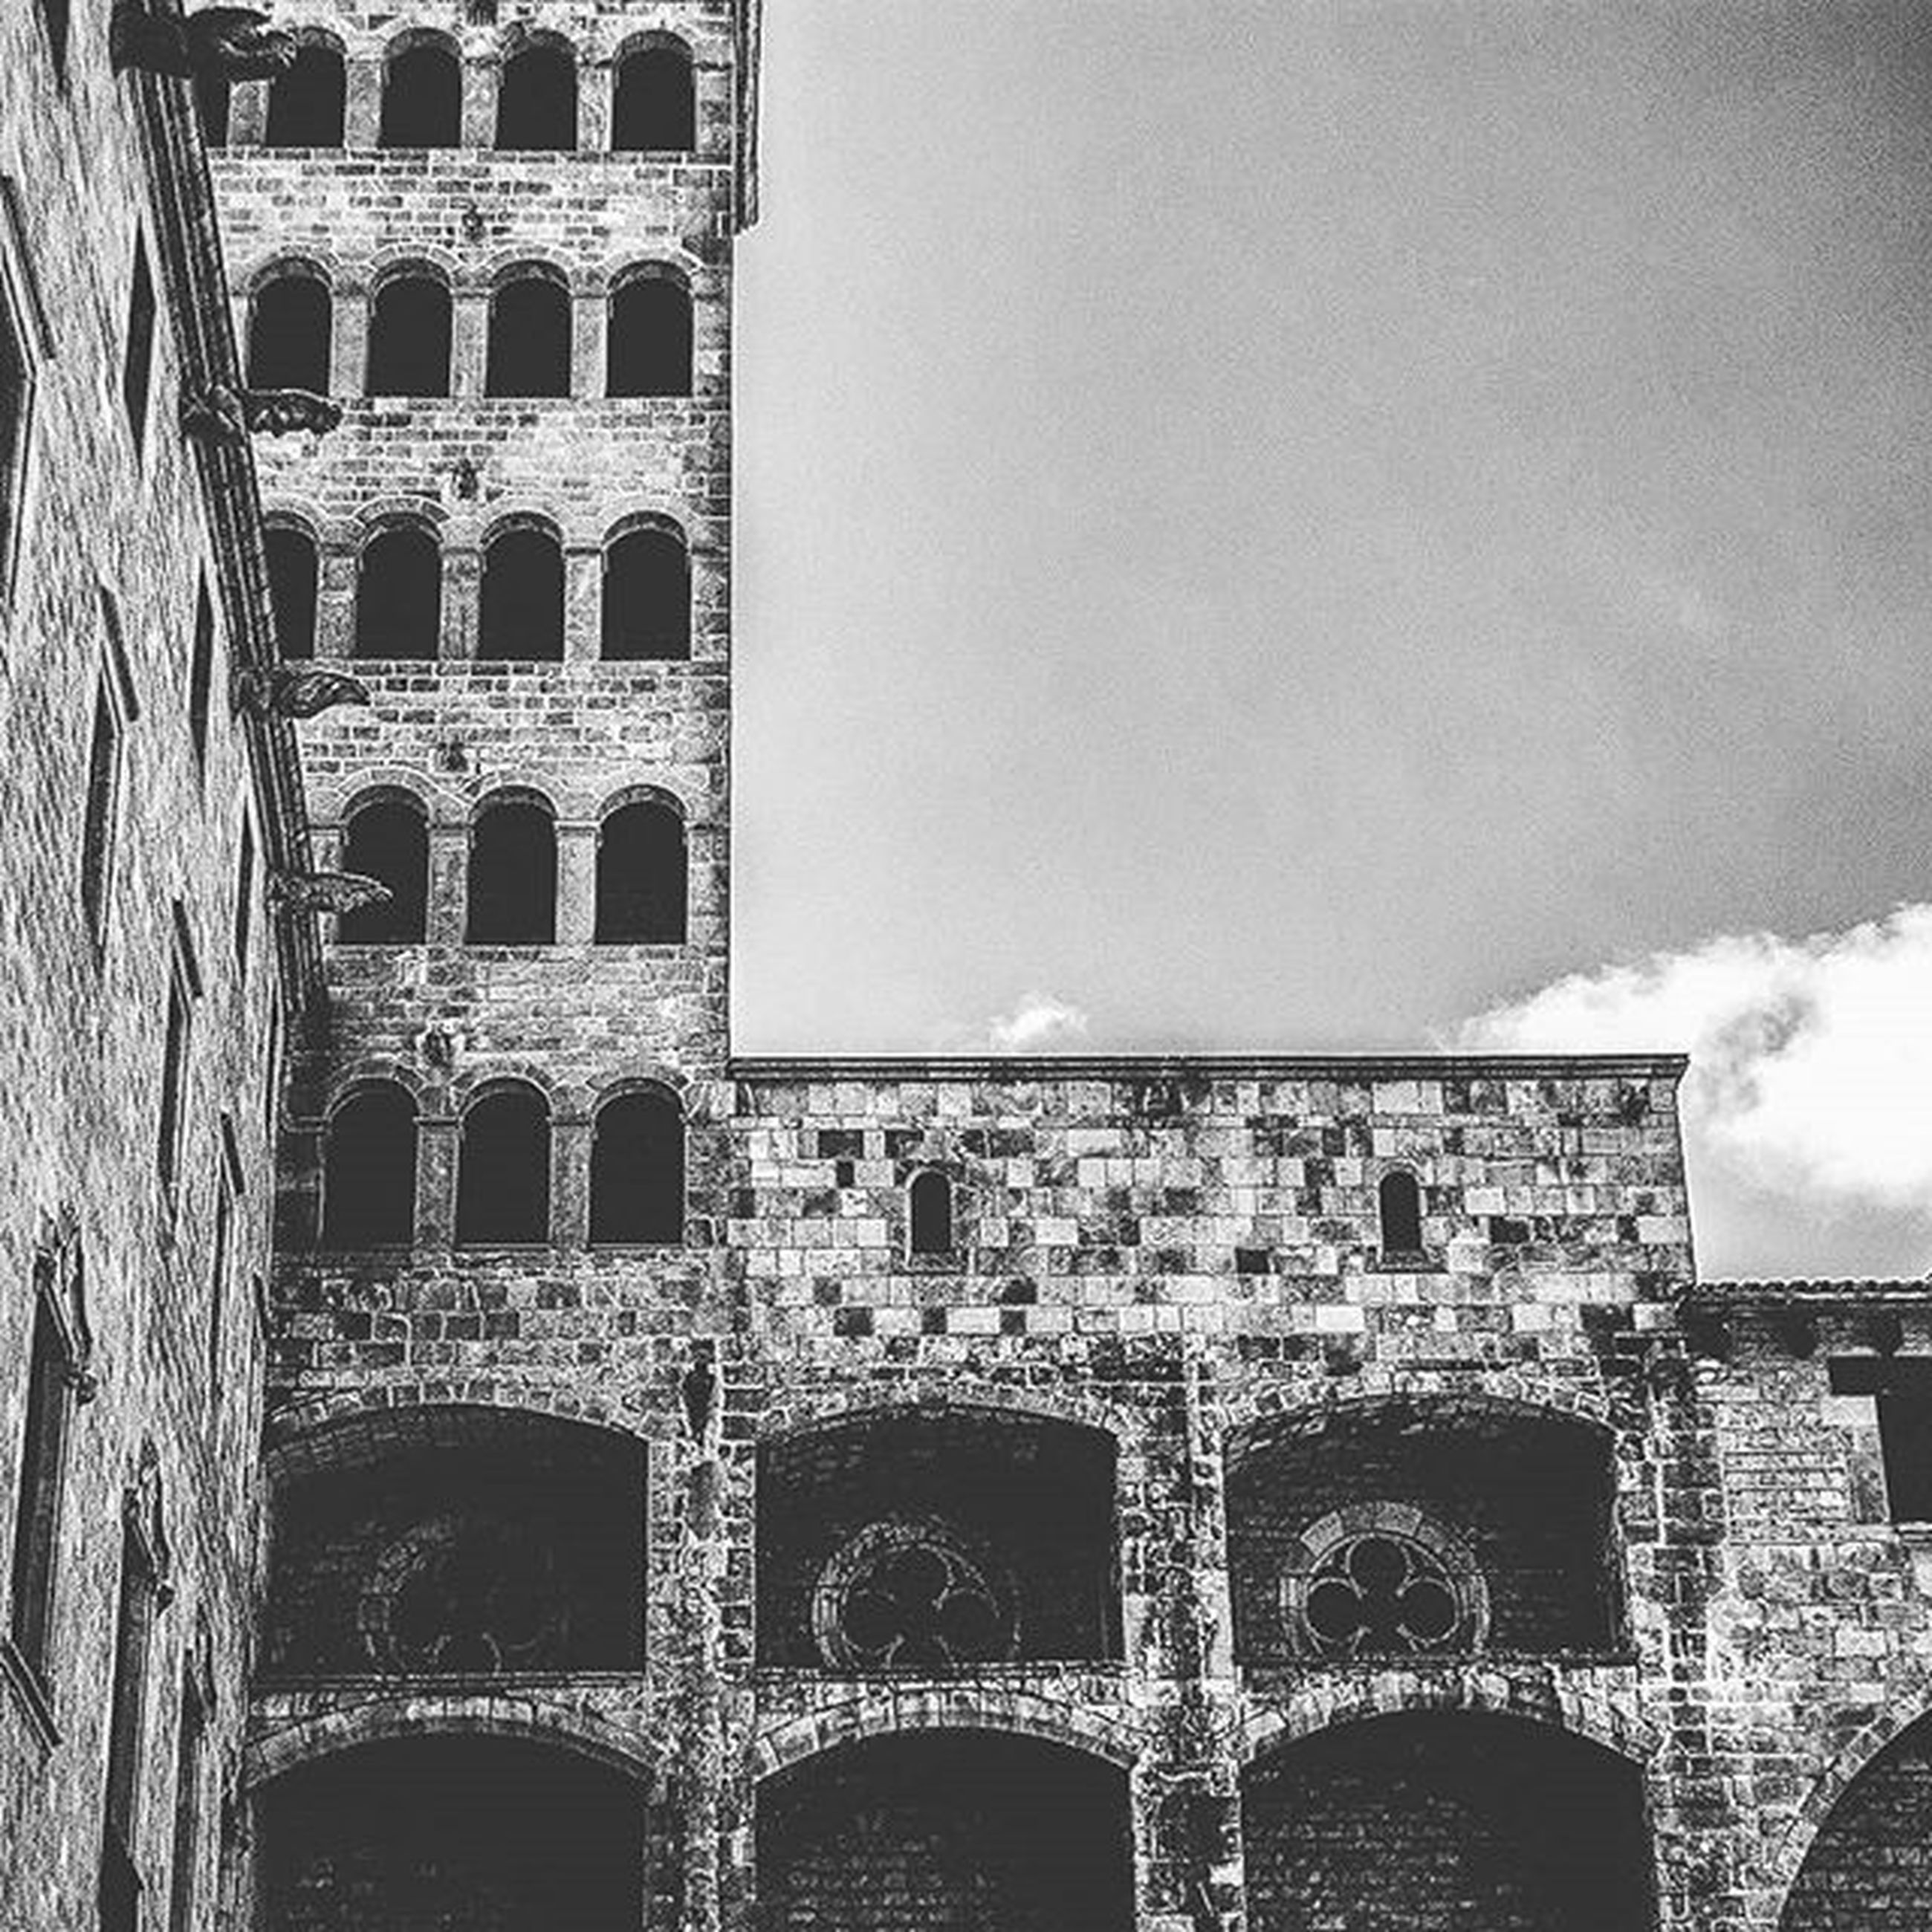 architecture, built structure, building exterior, city, cityscape, sky, window, building, history, day, pattern, tower, arch, outdoors, famous place, residential building, no people, modern, travel destinations